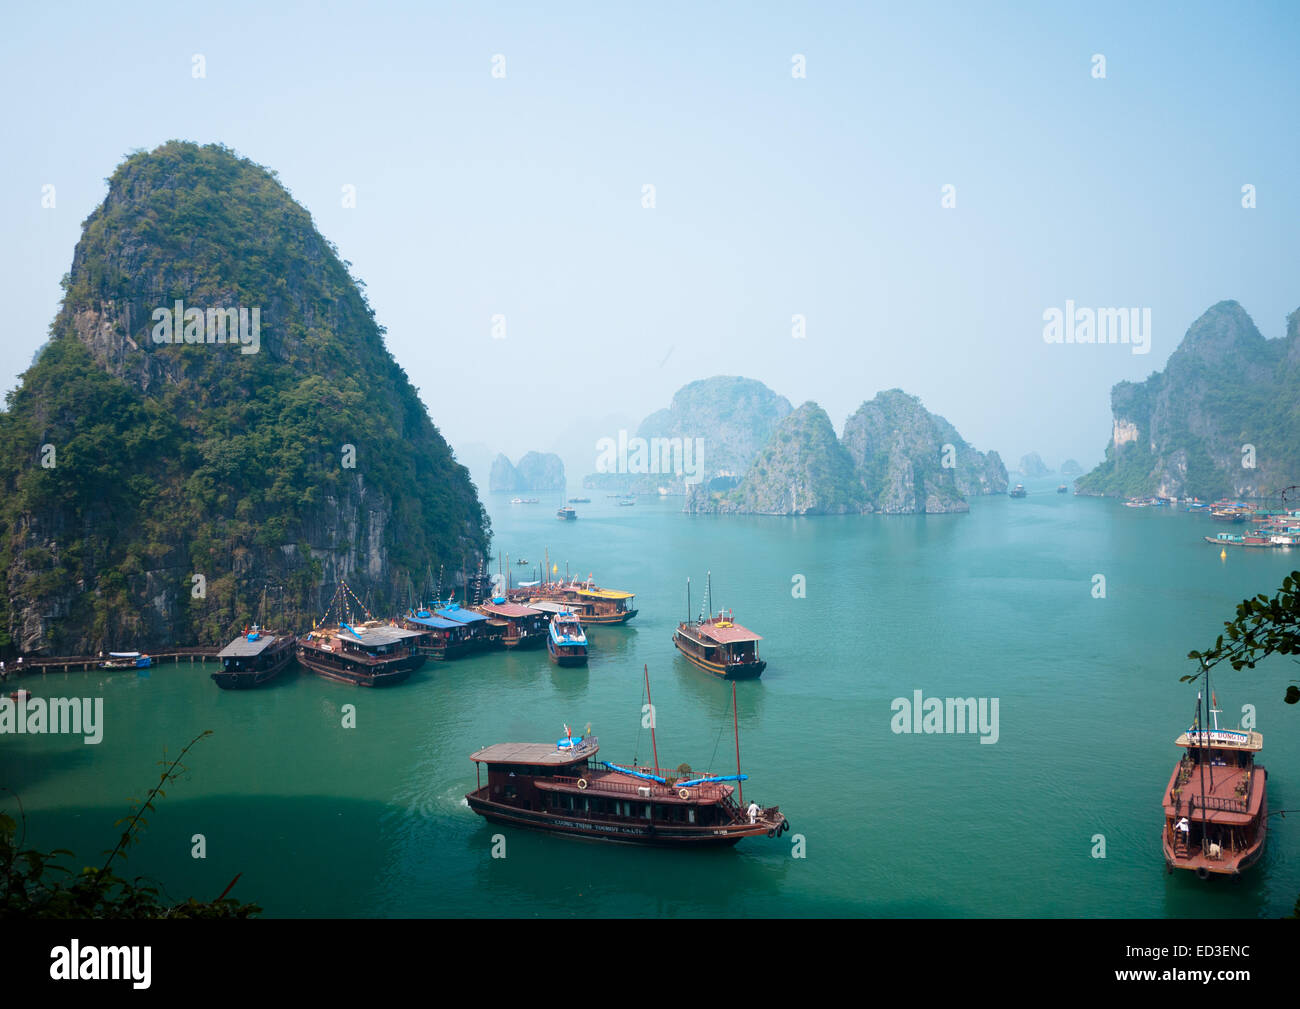 A view of the spectacular limestone karst formations rising above boats moored in Halong Bay, Vietnam. - Stock Image